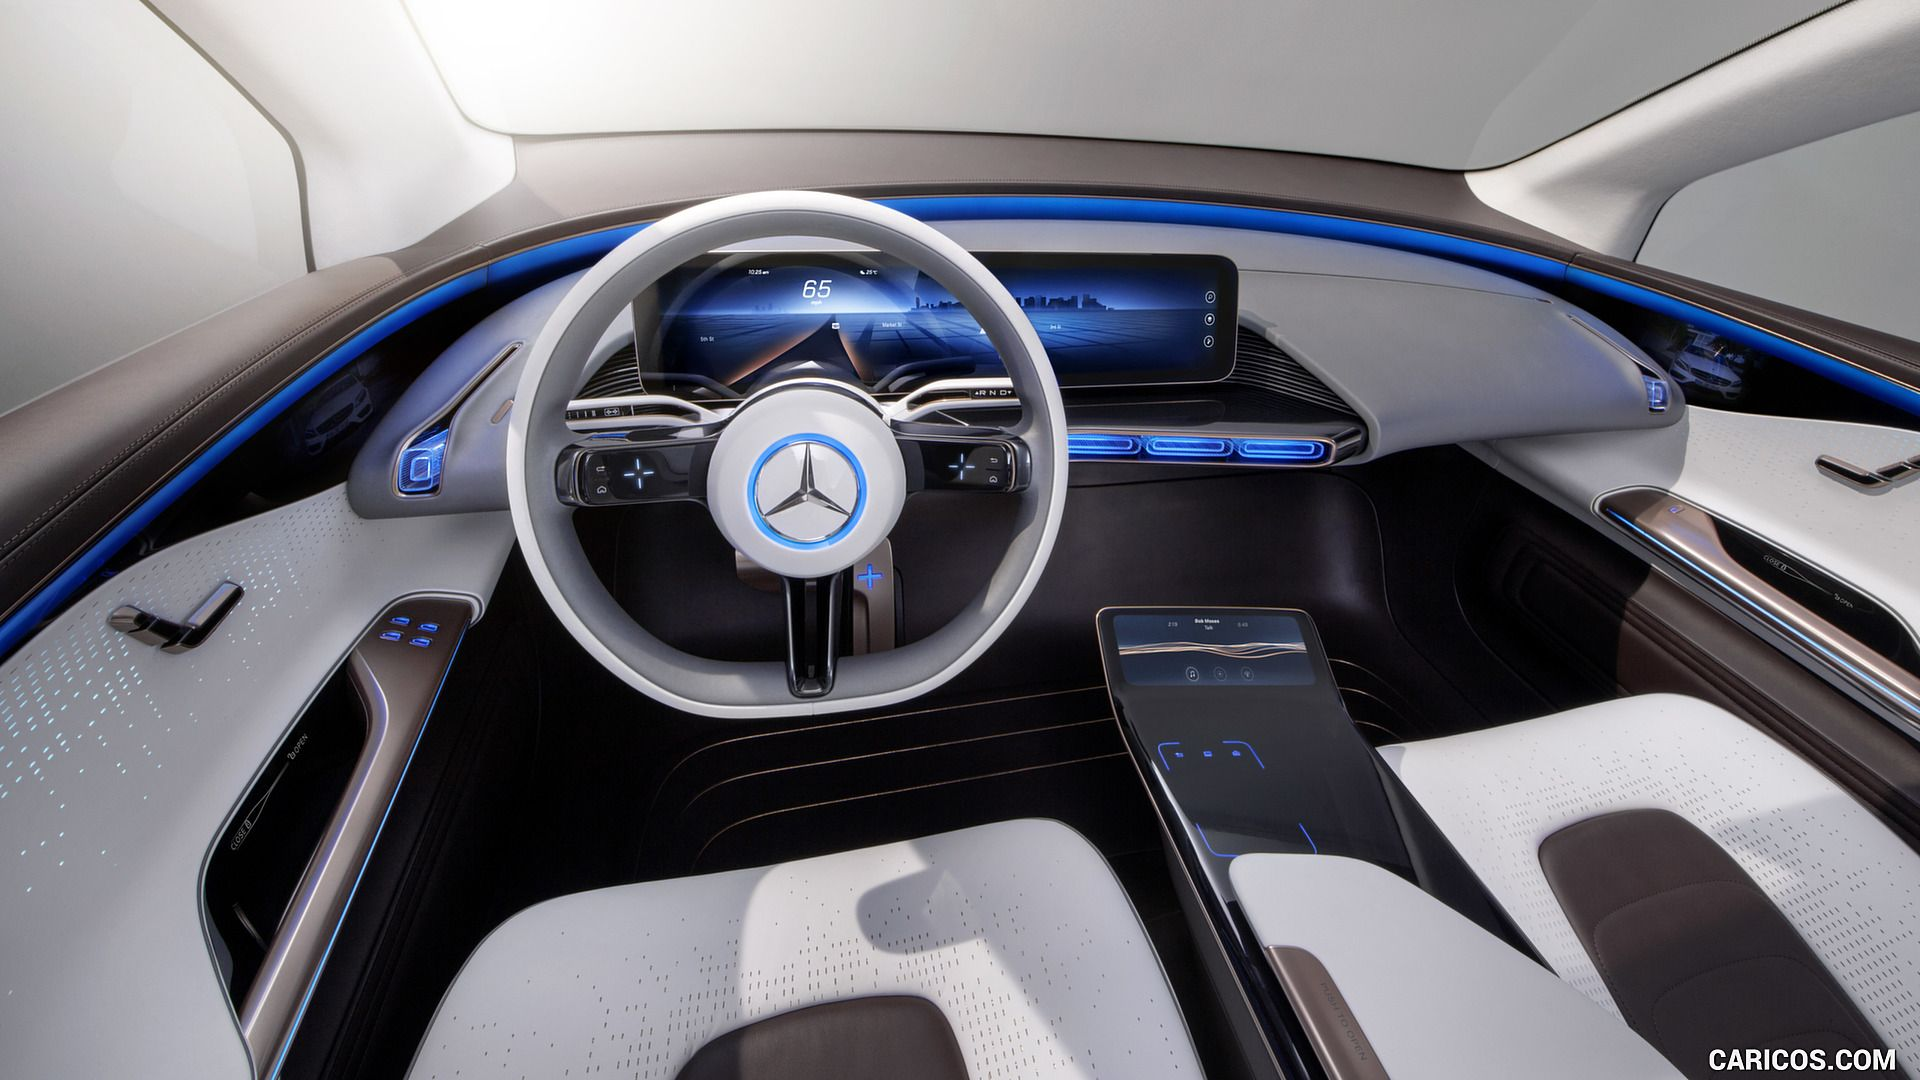 2016 Mercedes Benz Generation Eq Suv Concept Wallpaper Mercedes